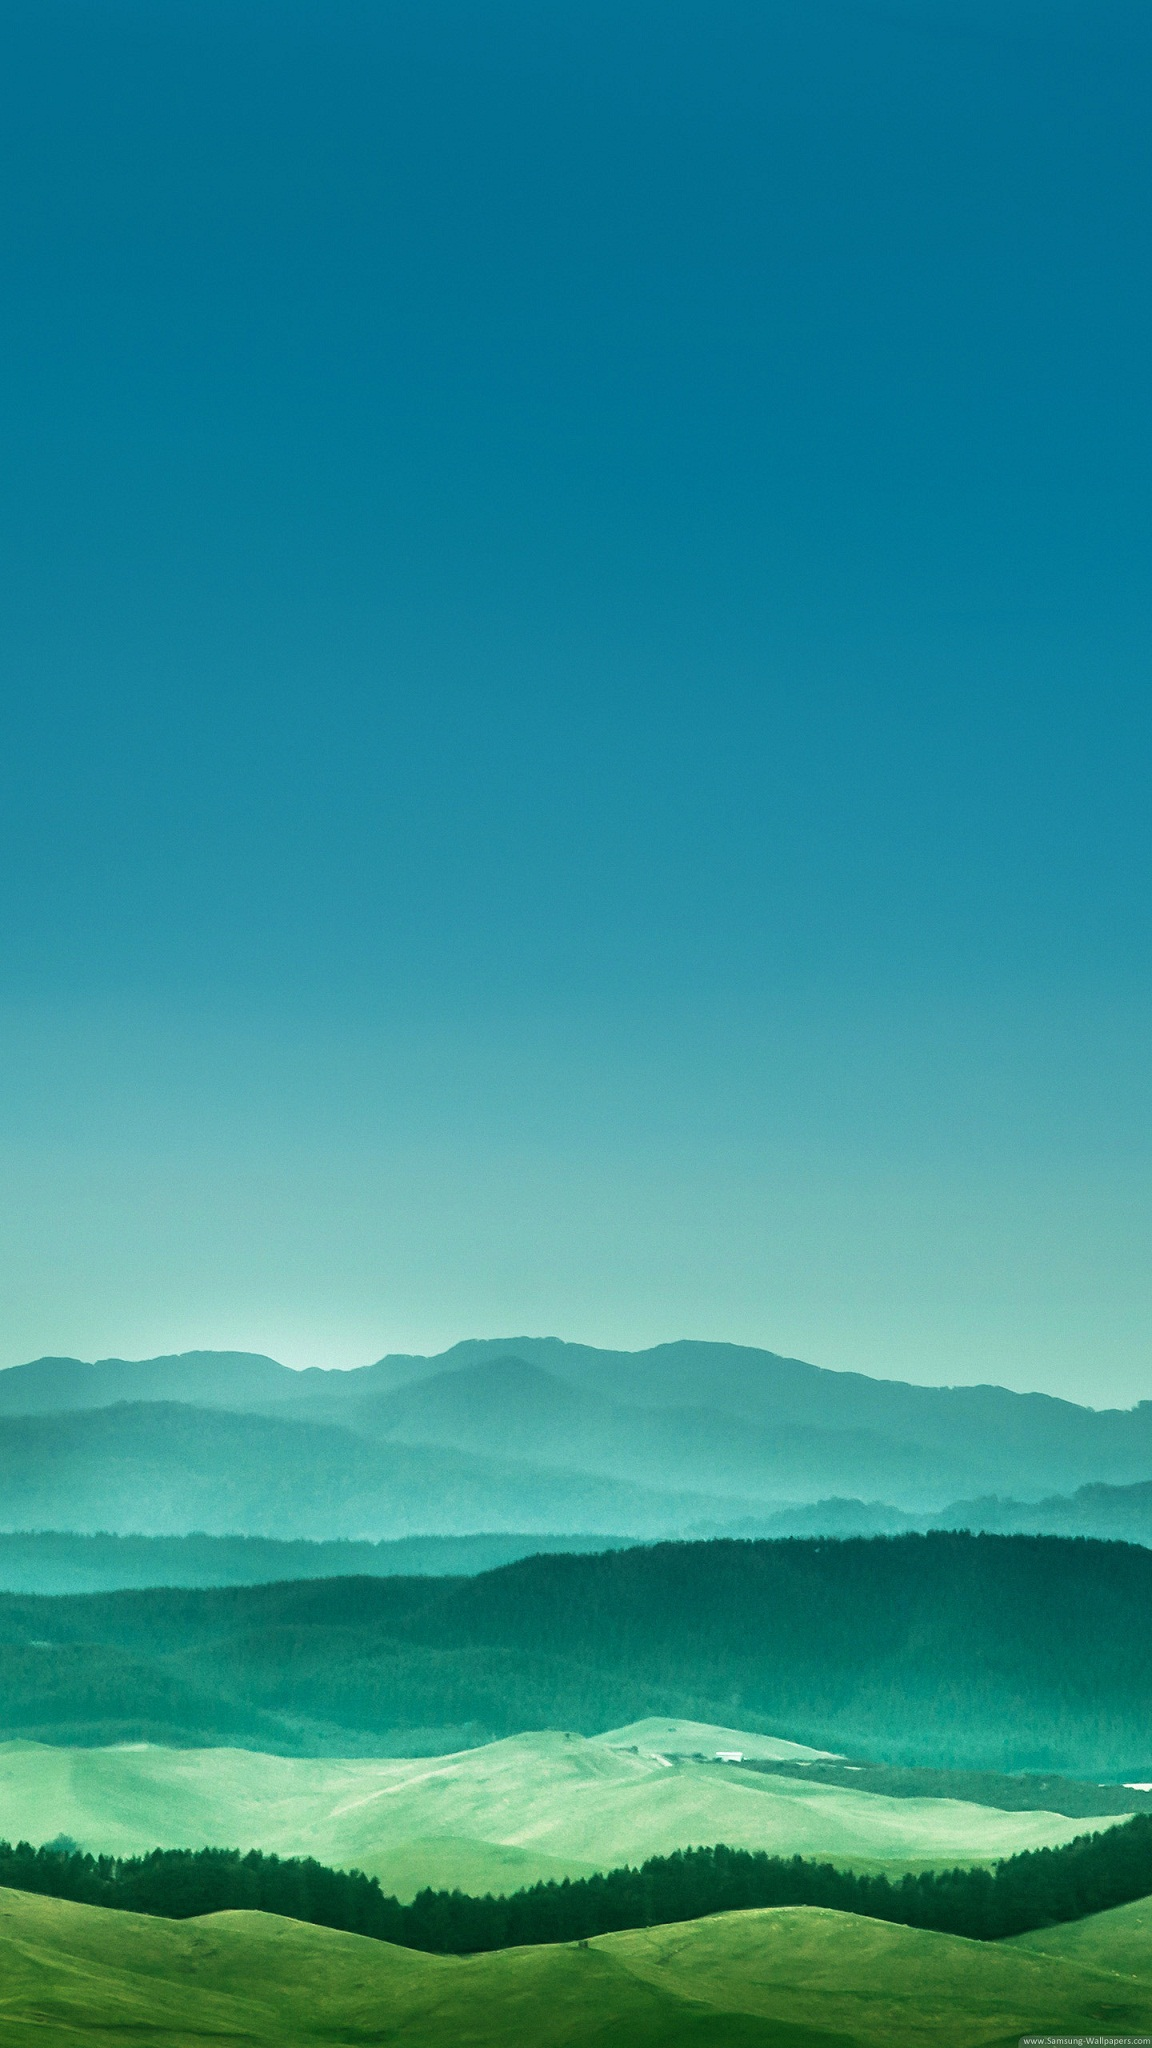 Ios 8 Official Wallpaper - Beautiful Picture For Home Phone Screen - HD Wallpaper